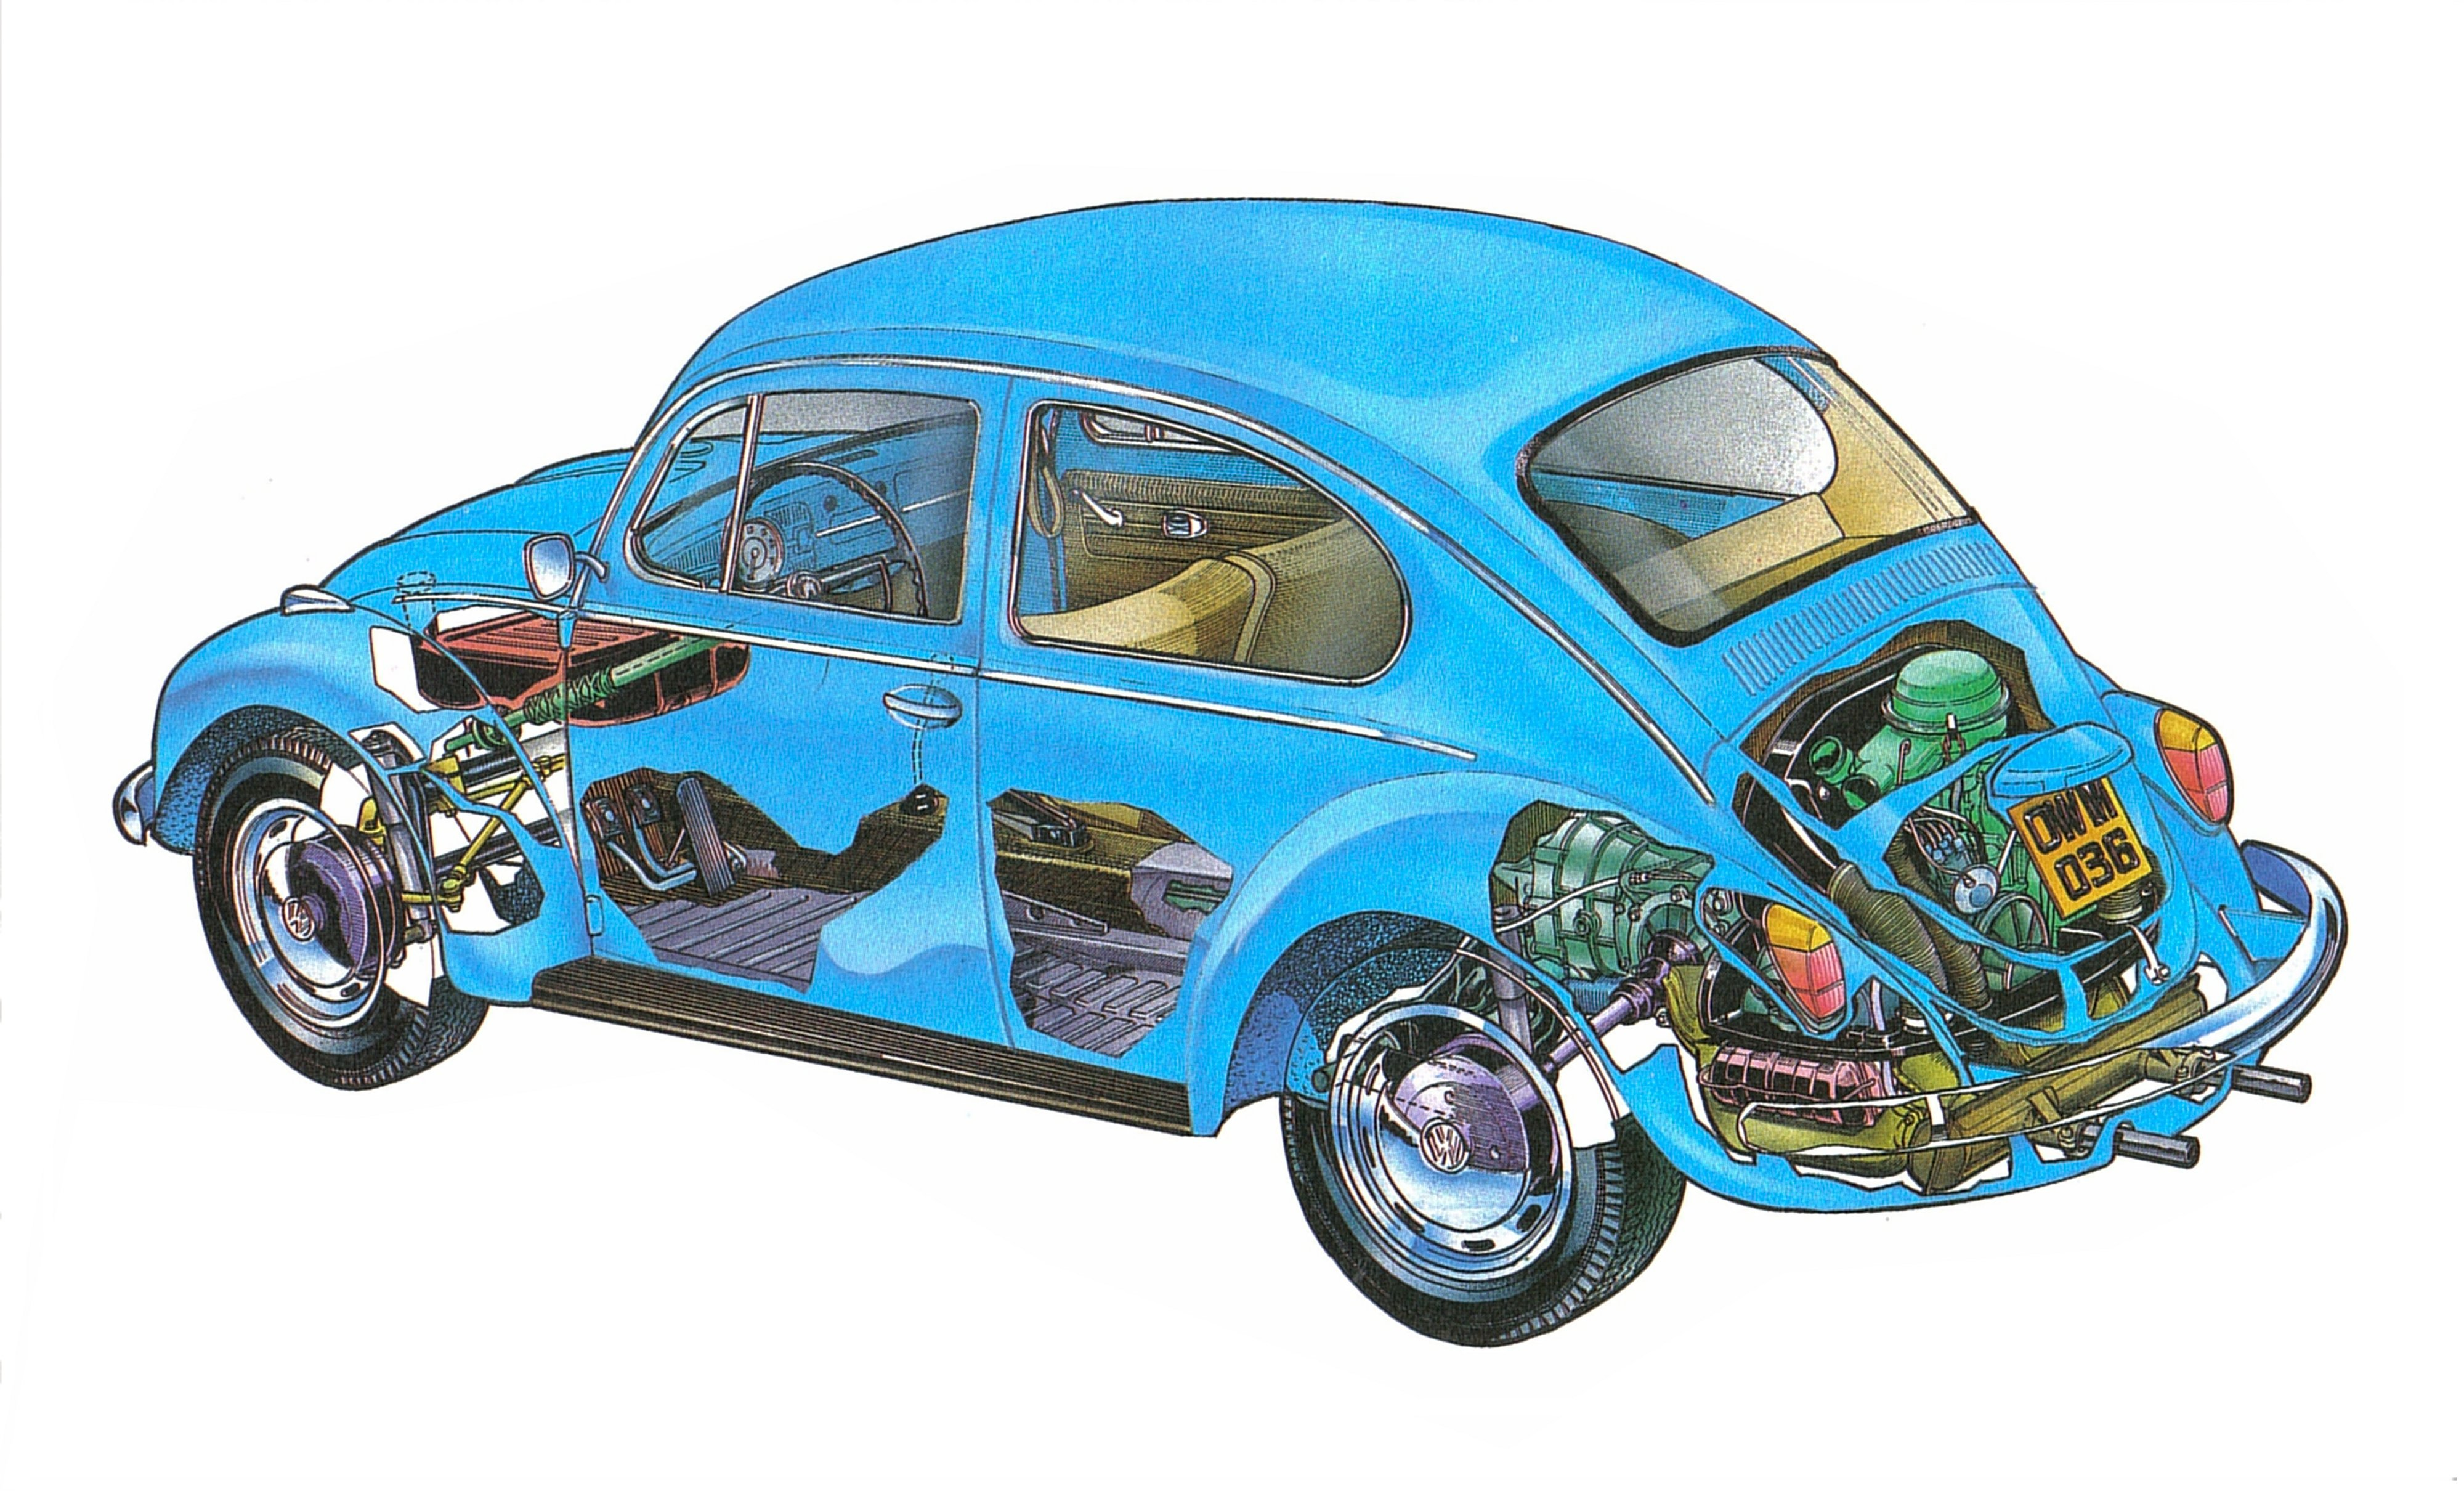 Volkswagen Beetle 1200 Technical Cars Cutaway Wallpaper